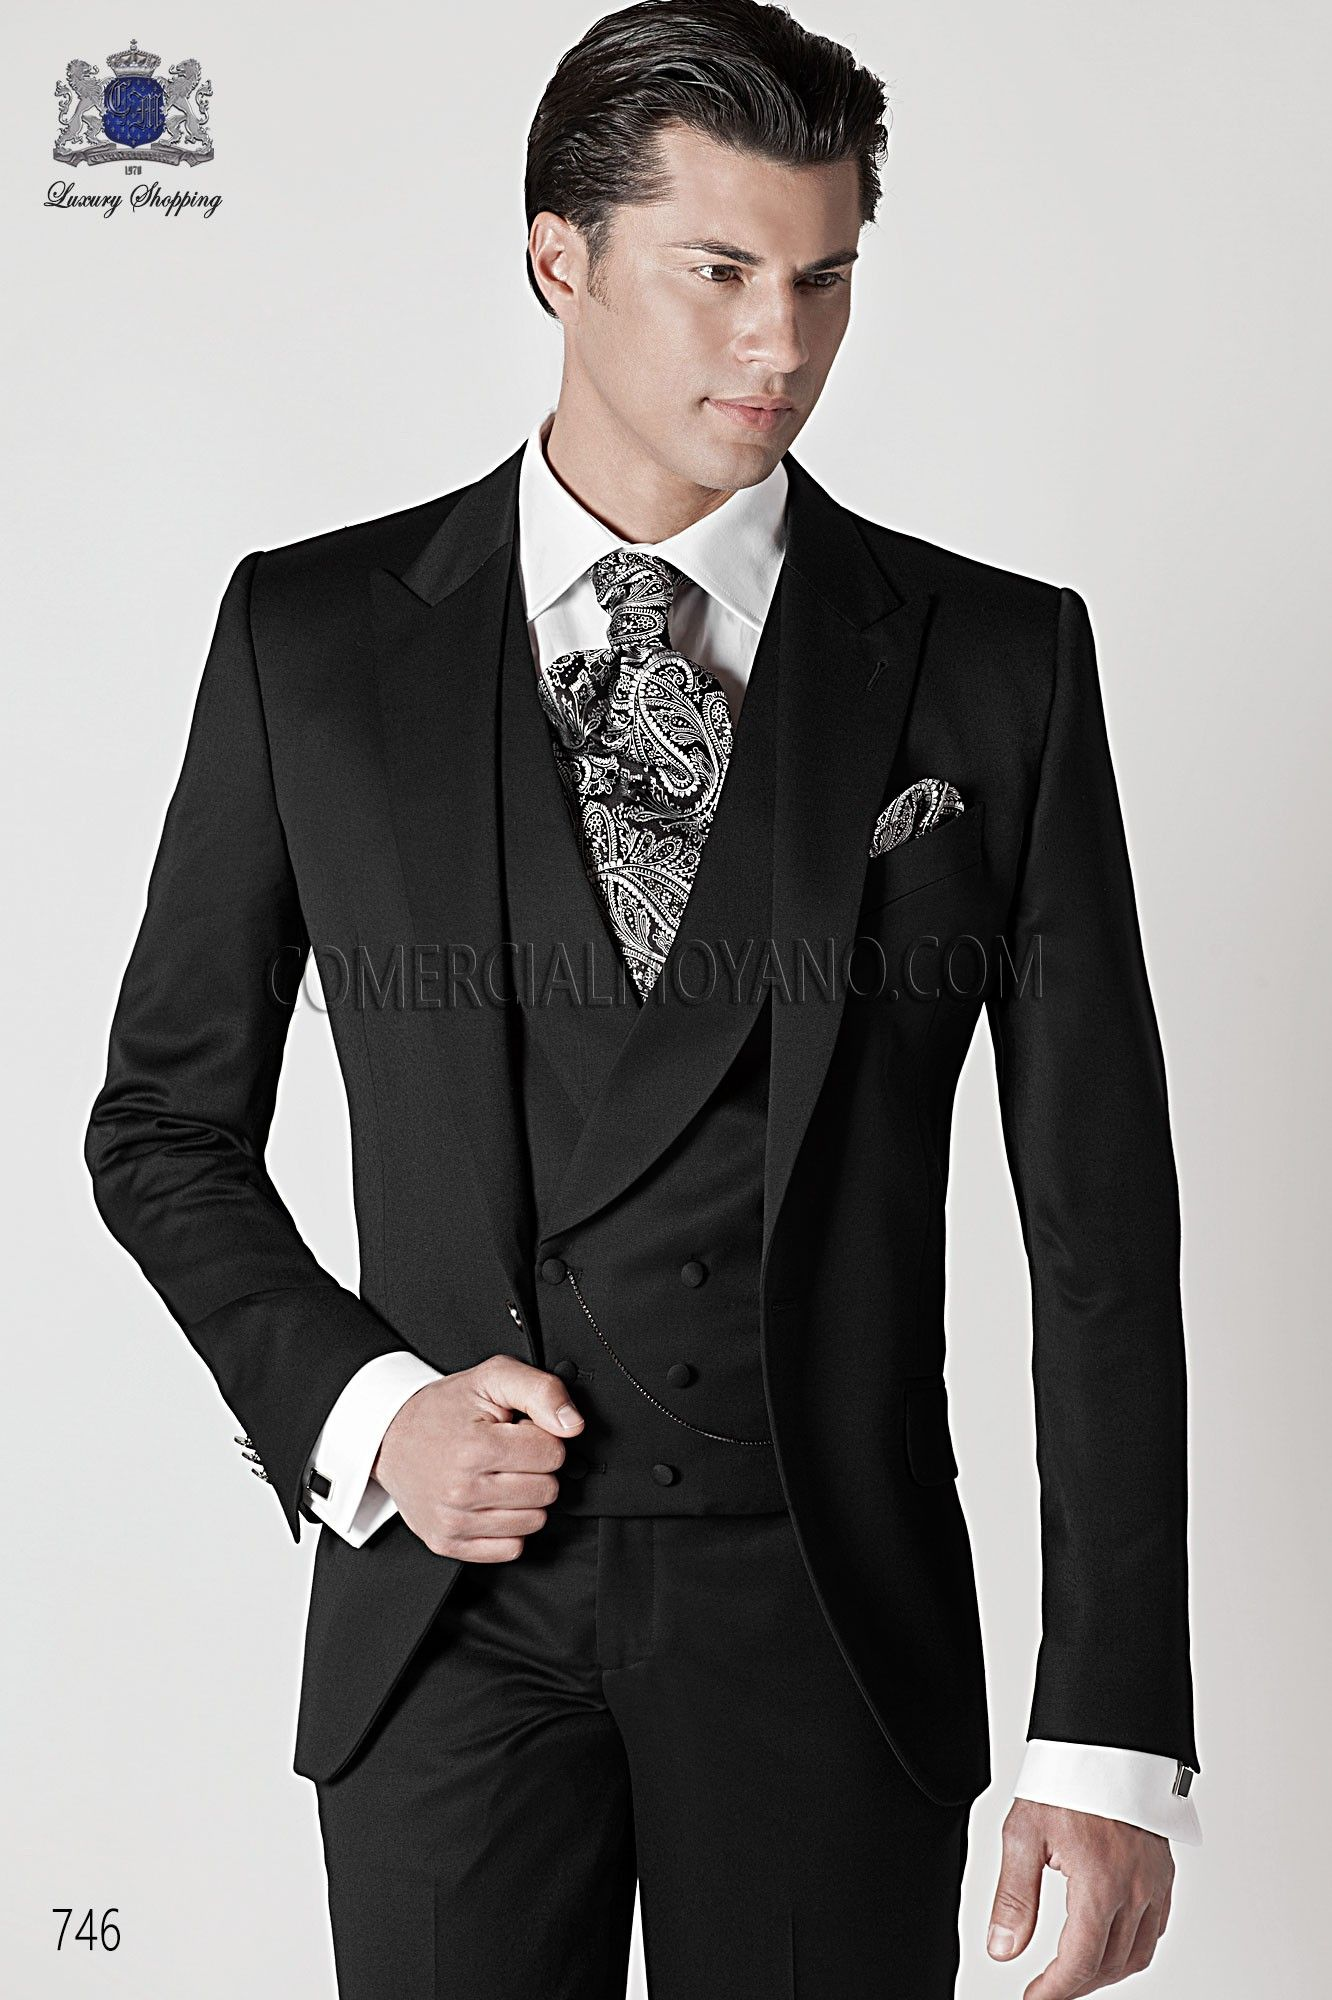 italian-black-wedding-suit.jpg (1332×2000) | nombulelo | Pinterest ...